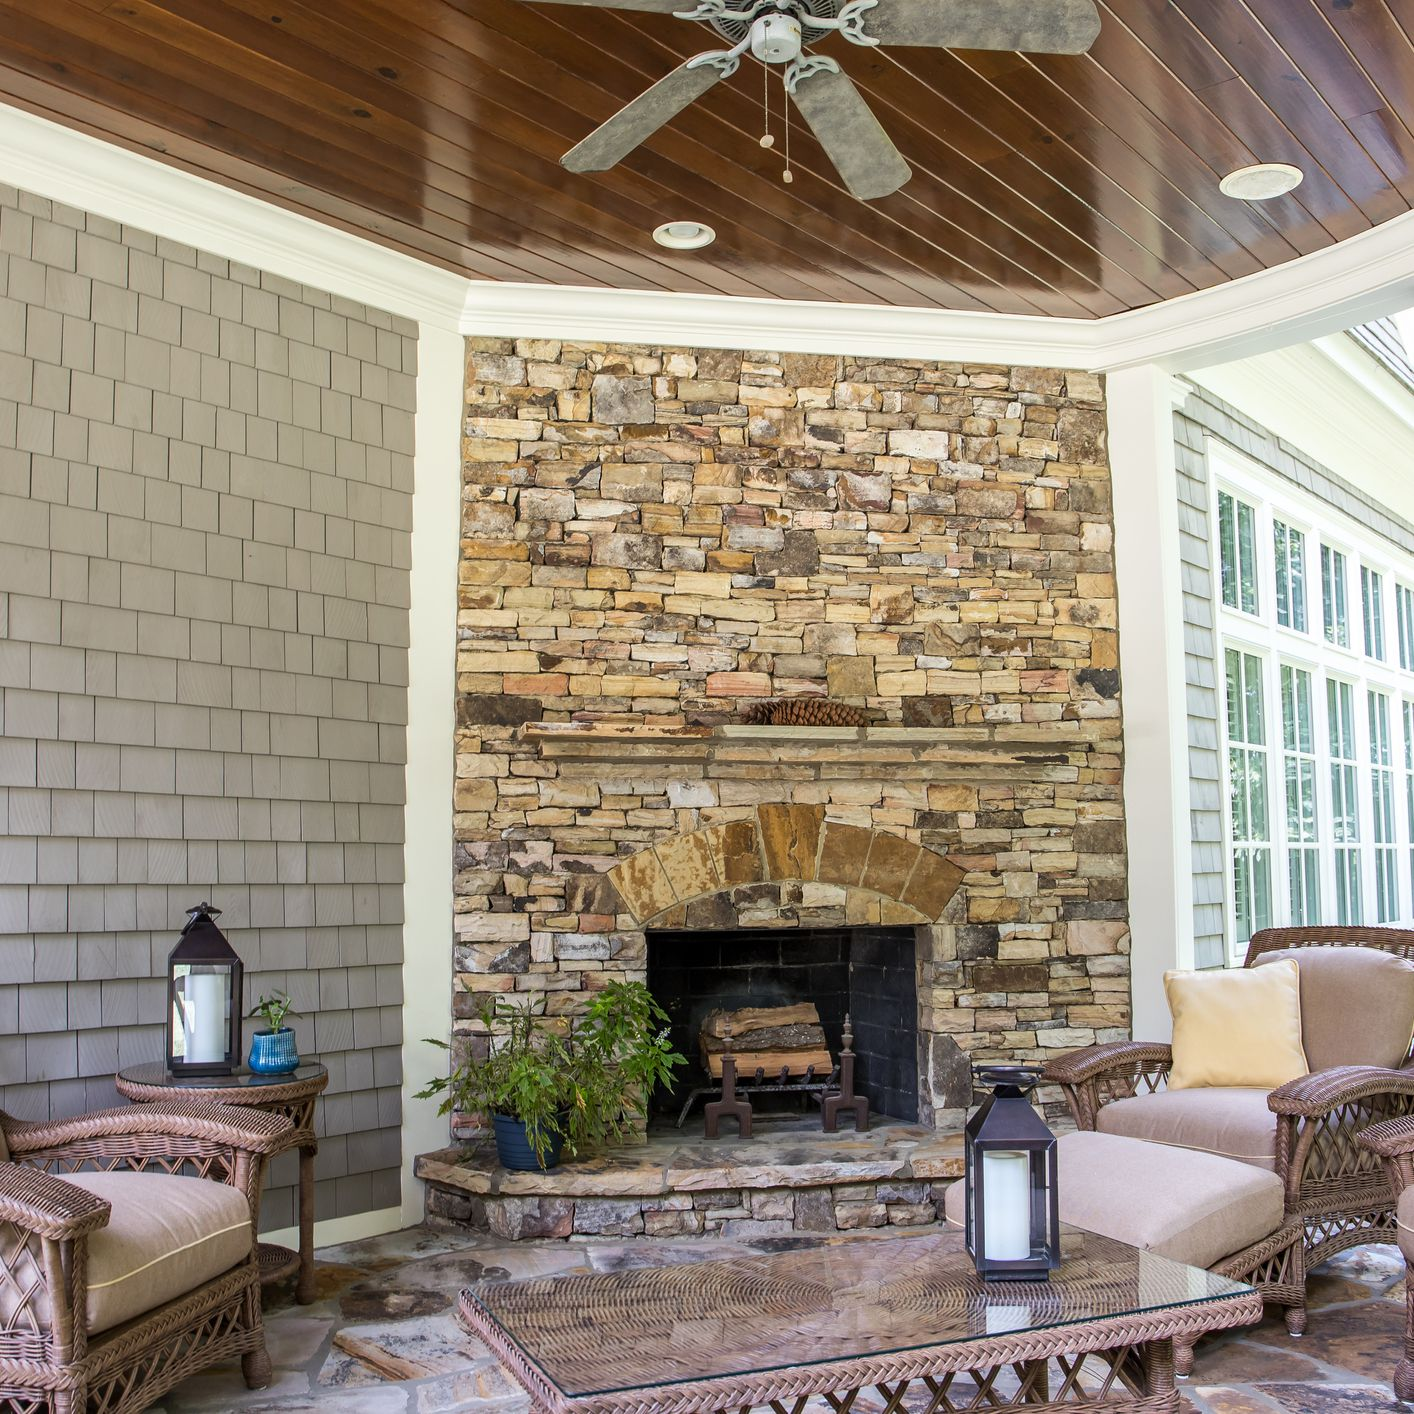 25 Warm And Cozy Outdoor Fireplace Designs